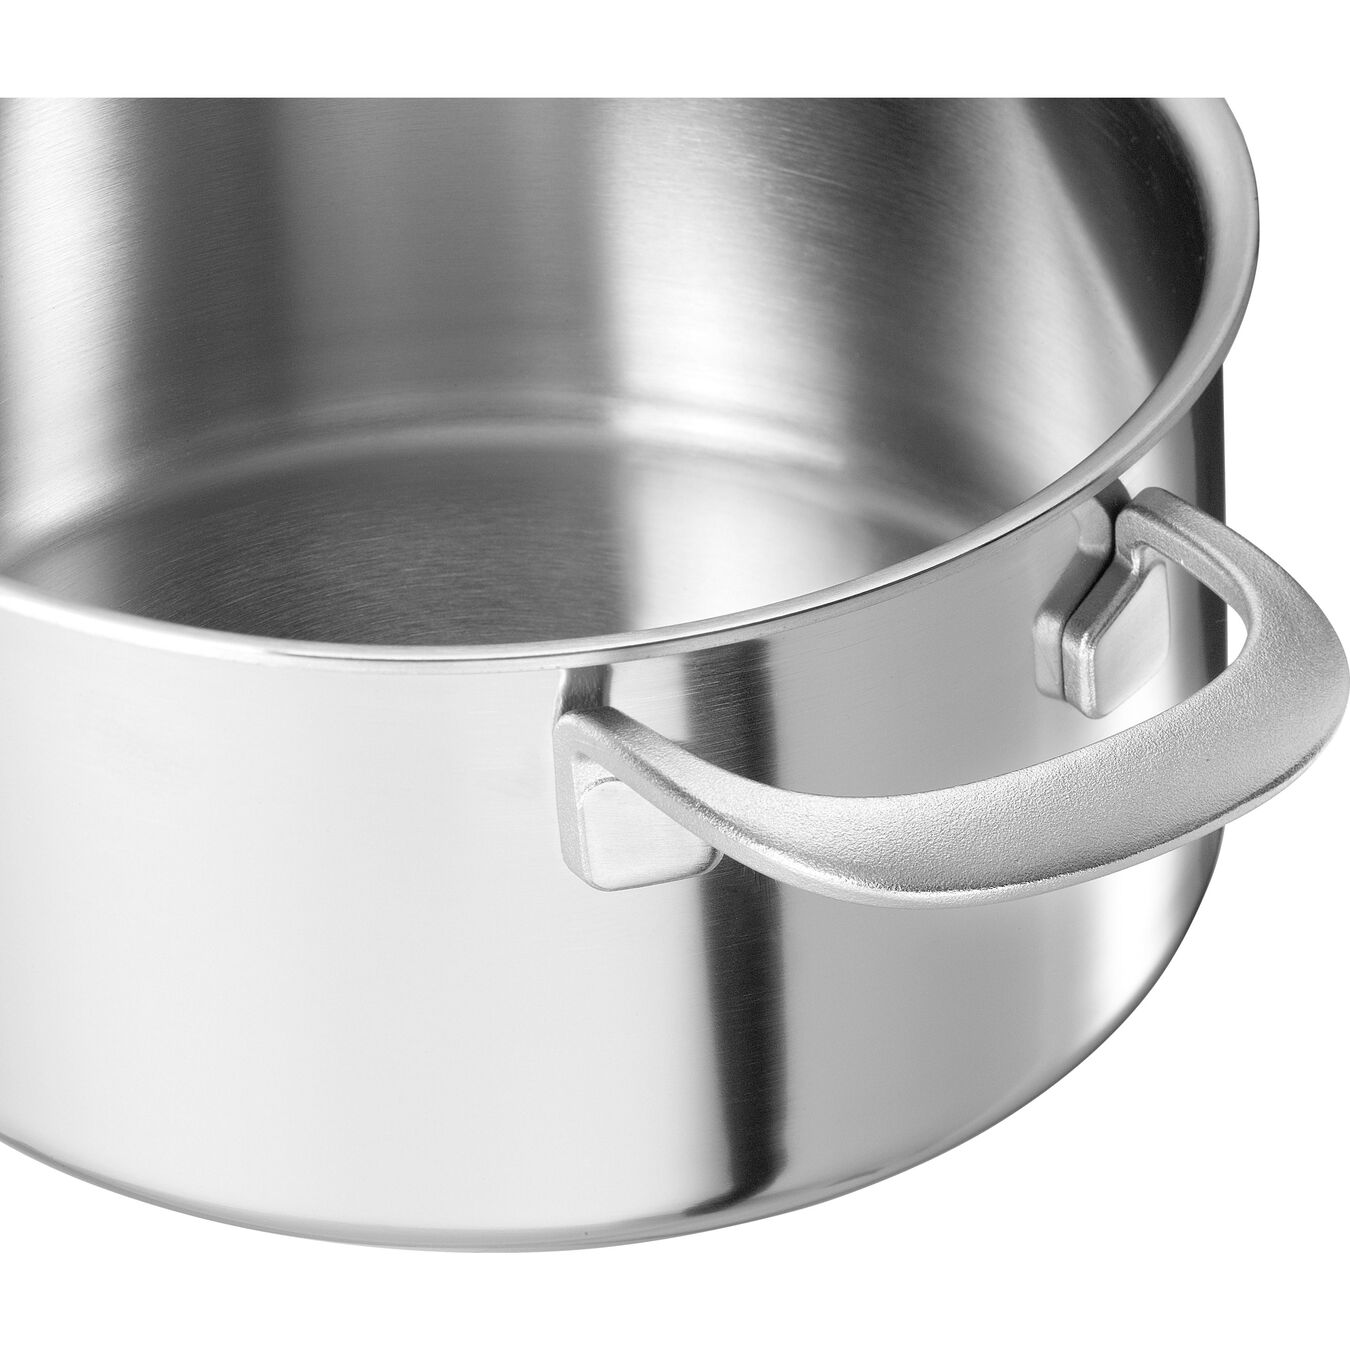 5.25 l 18/10 Stainless Steel Stew pot,,large 4